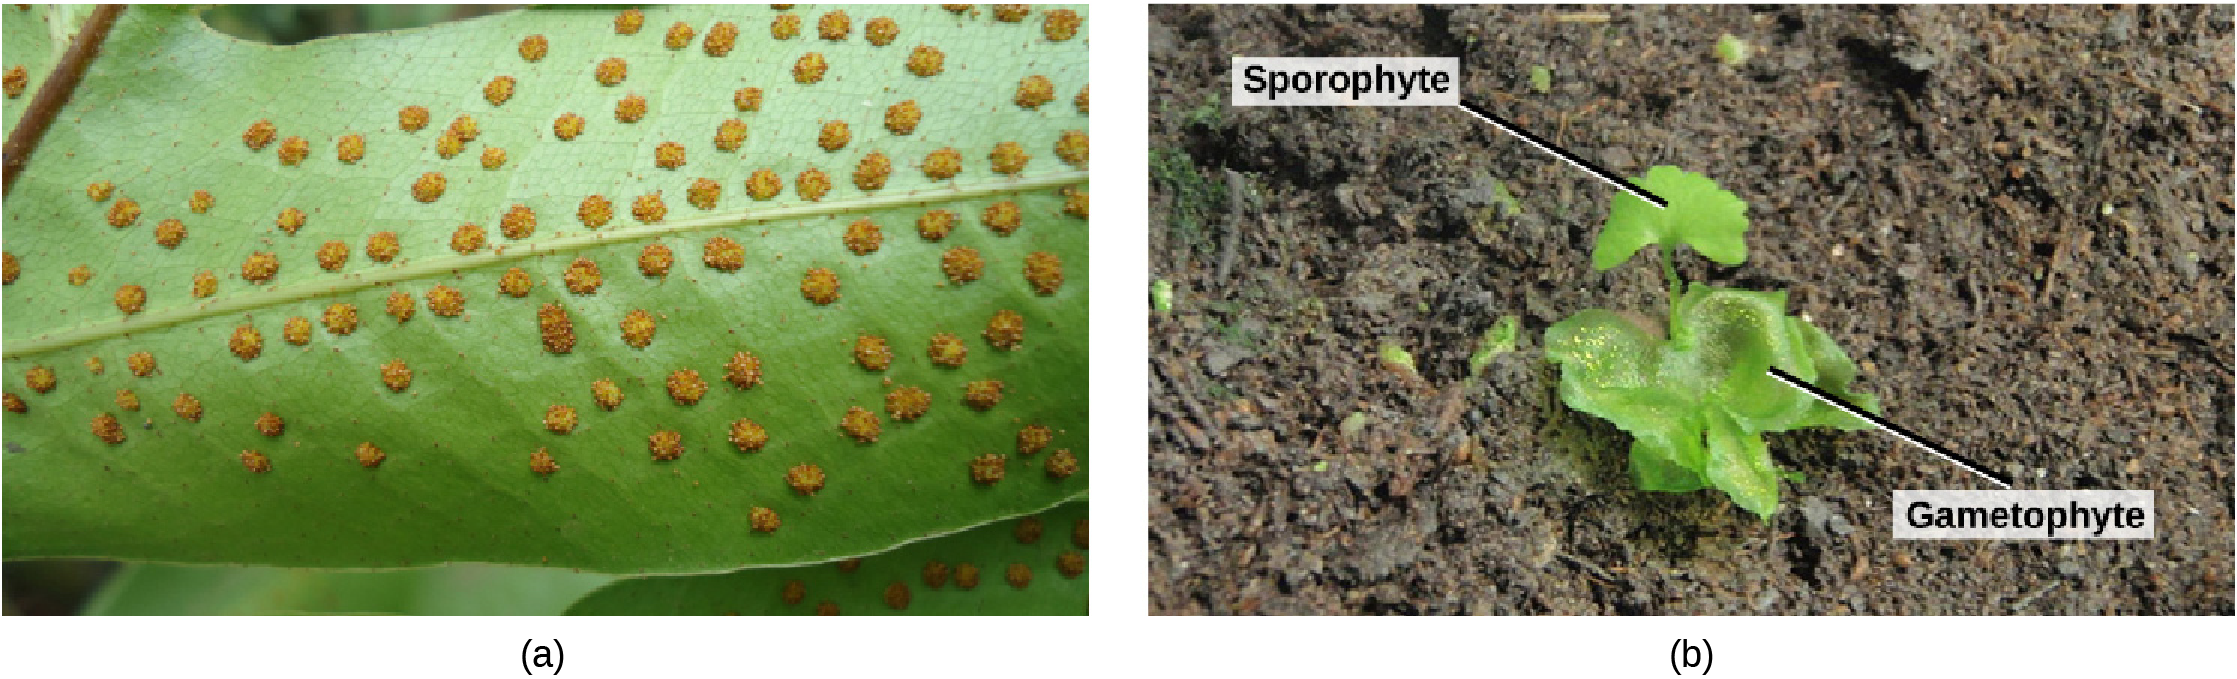 Photo A shows small bumps called sori on the underside of a fern frond. Photo B shows a young sporophyte with a fan-shaped leaf growing from a lettuce-like gametophyte.